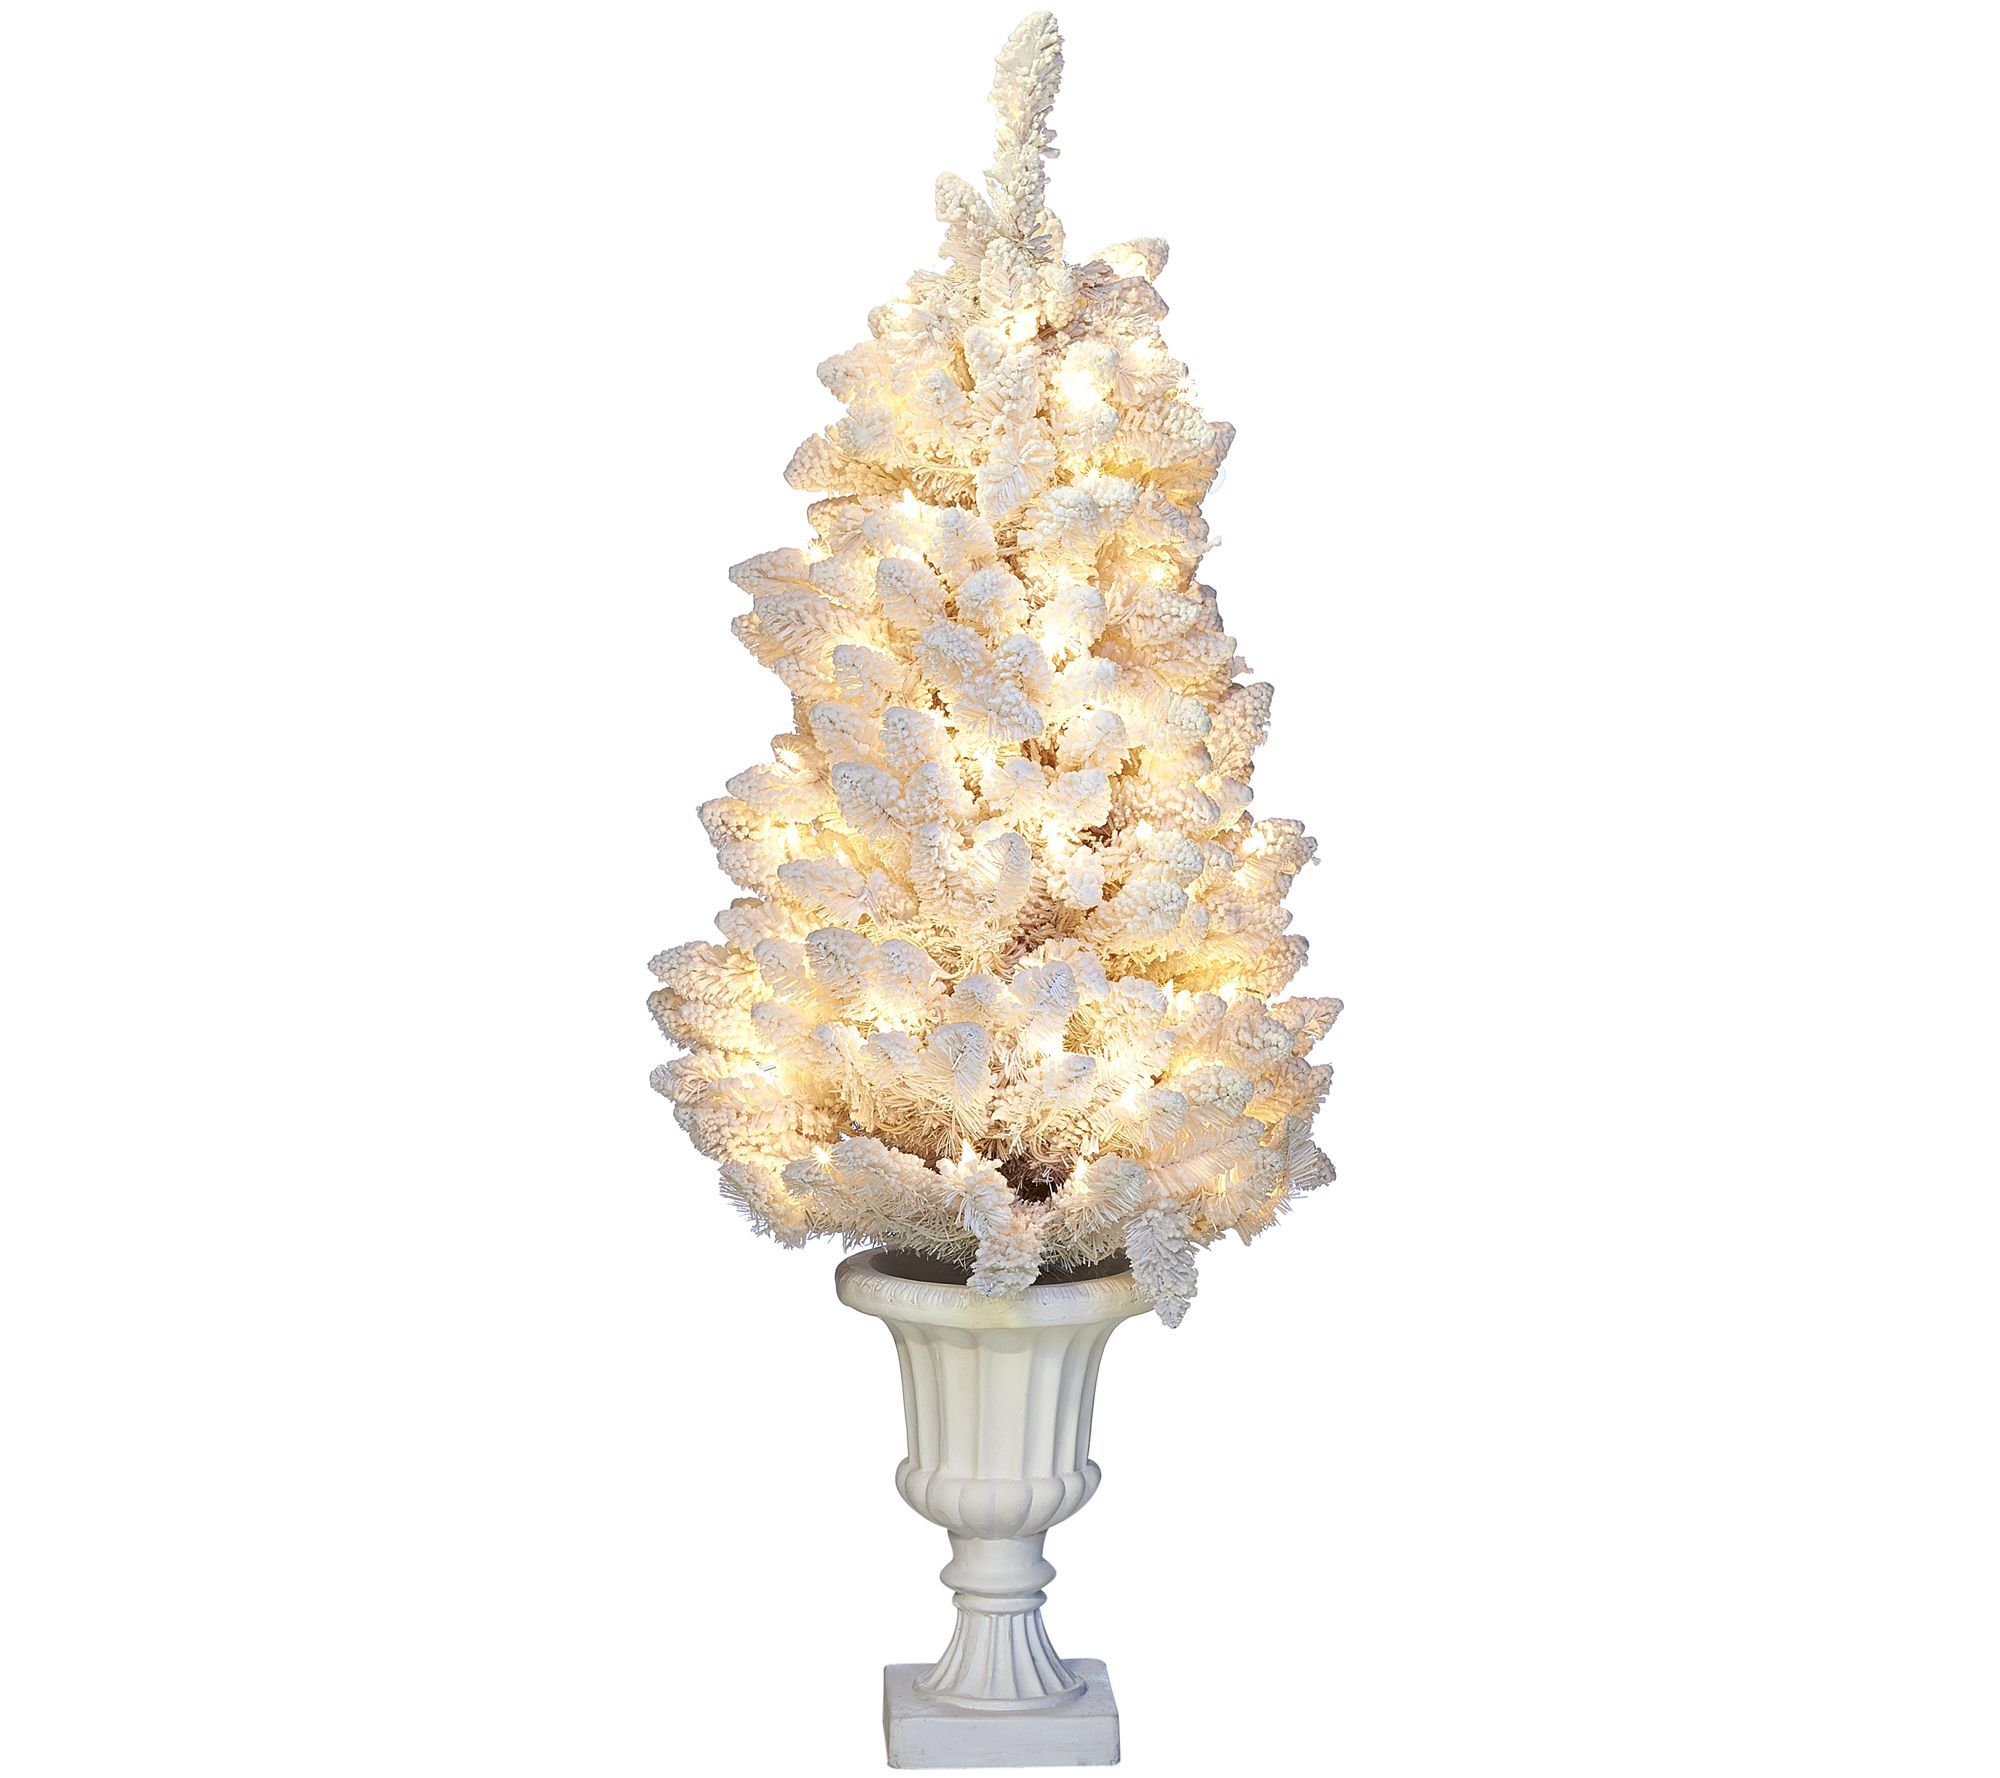 bethlehem lighting. Bethlehem Lights Hudson Prelit 4\u0027 Urn Tree Lighting